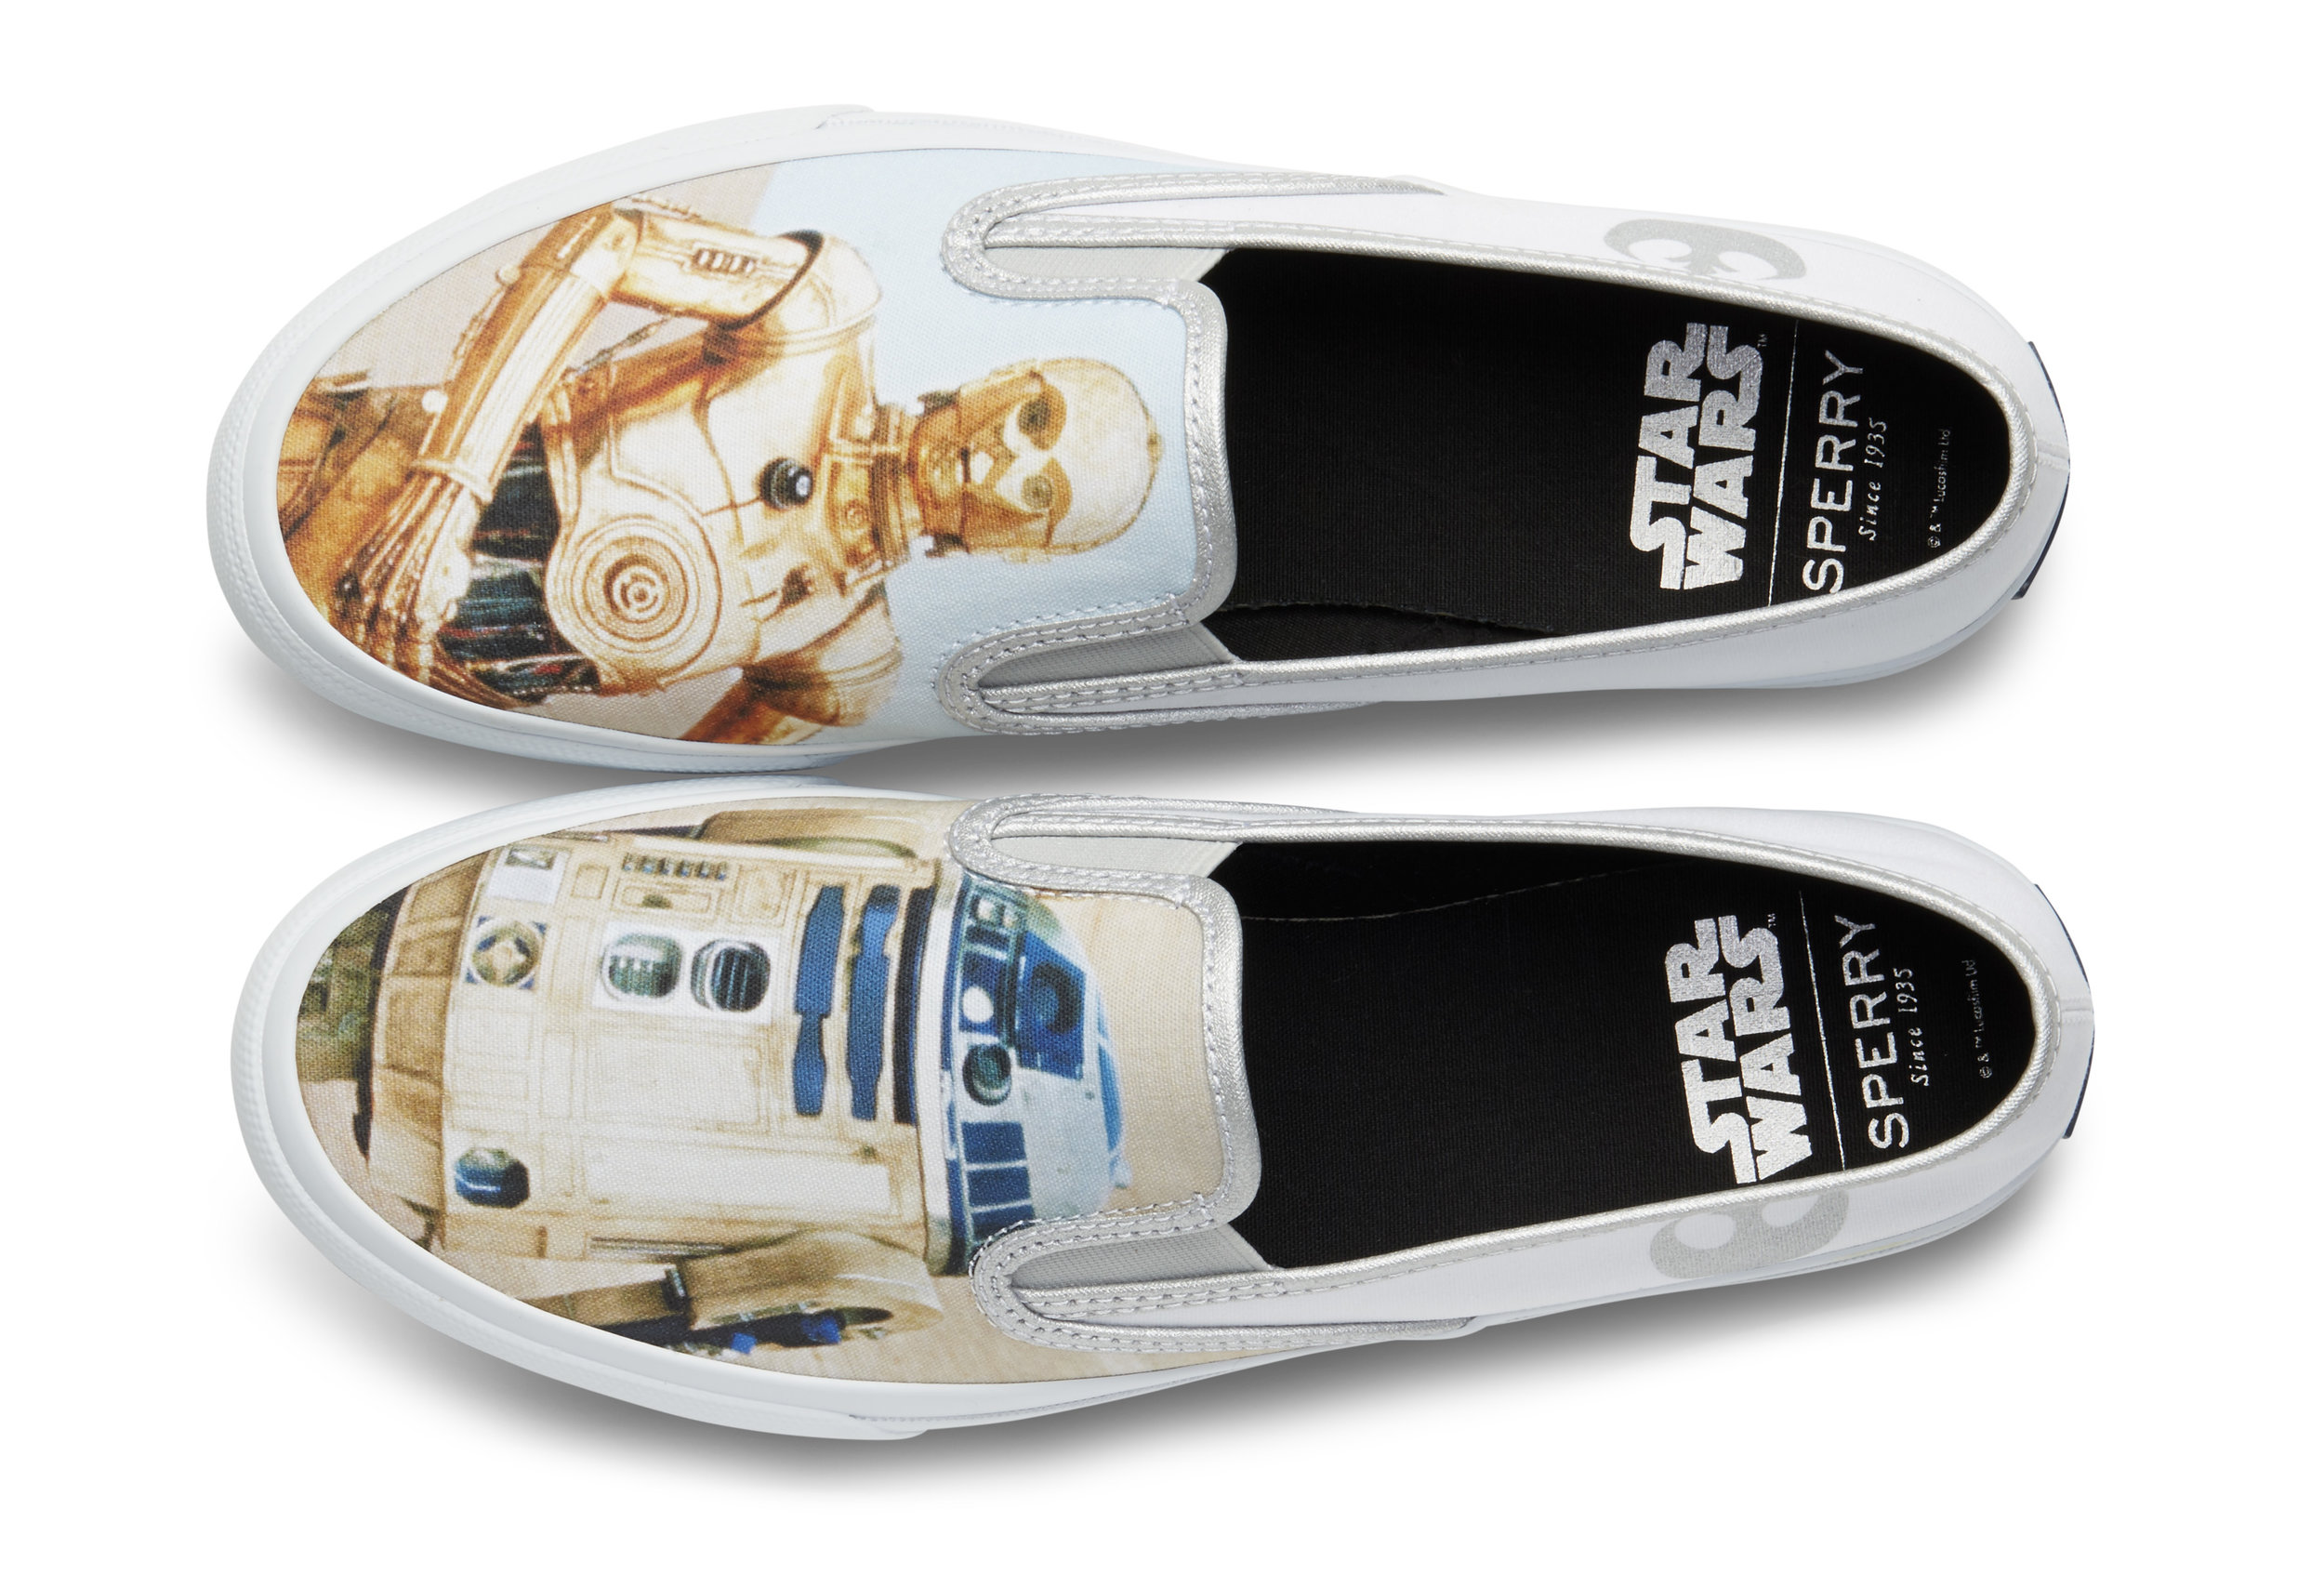 check-out-this-cool-line-of-star-wars-themed-shoes-from-sperry11.jpg